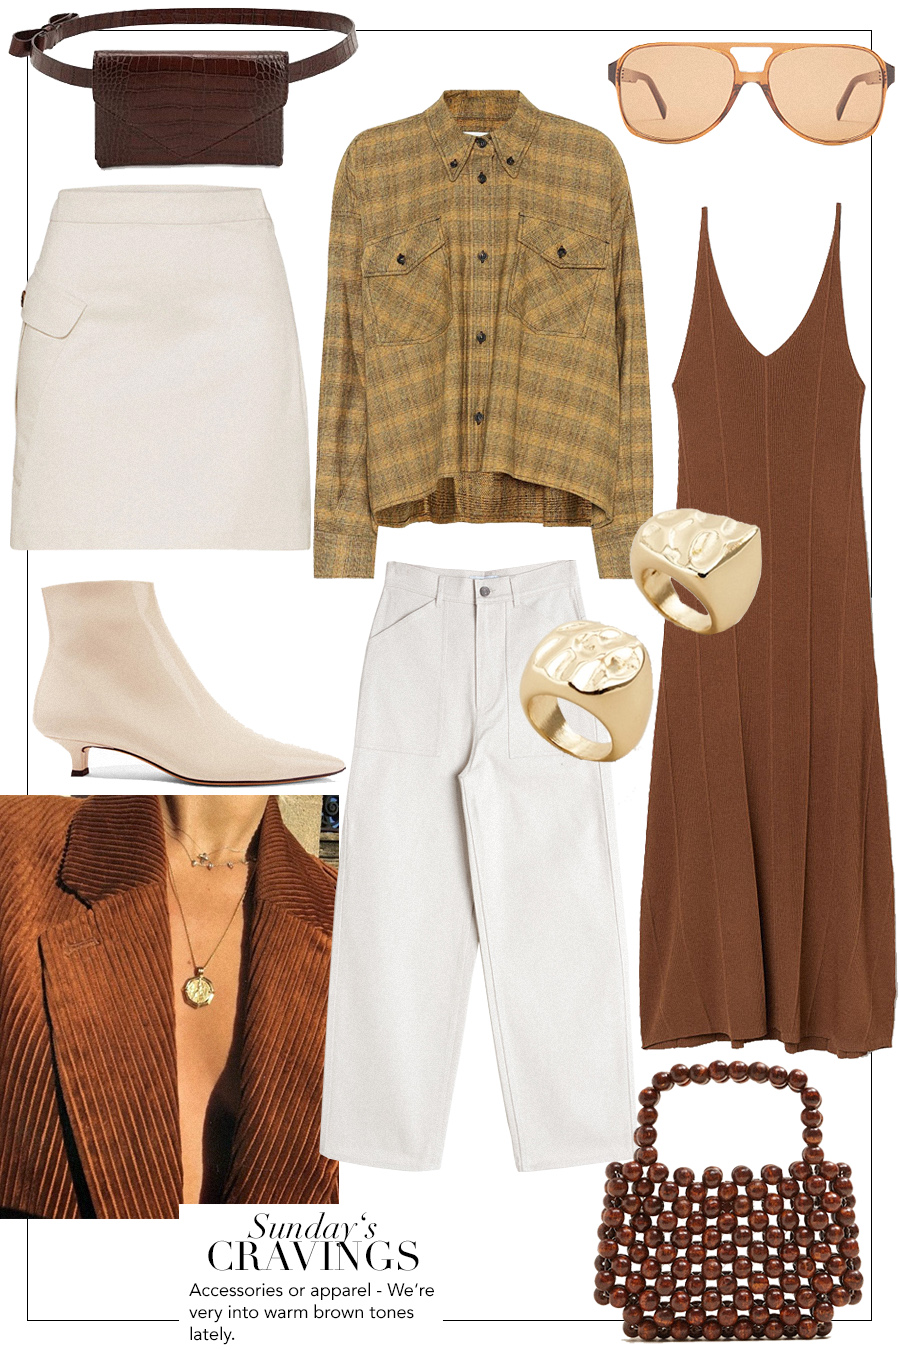 Céline Navigator Sunglasses, Micoli belt bag, Isabel Marant Étoile Checked cotton shirt, Edited White skirt, The Row Ankle boots, H&M Brown ripped dress, Mango chunky rings, & Other Stories White denim jeans, Mango Wooden pearls bag